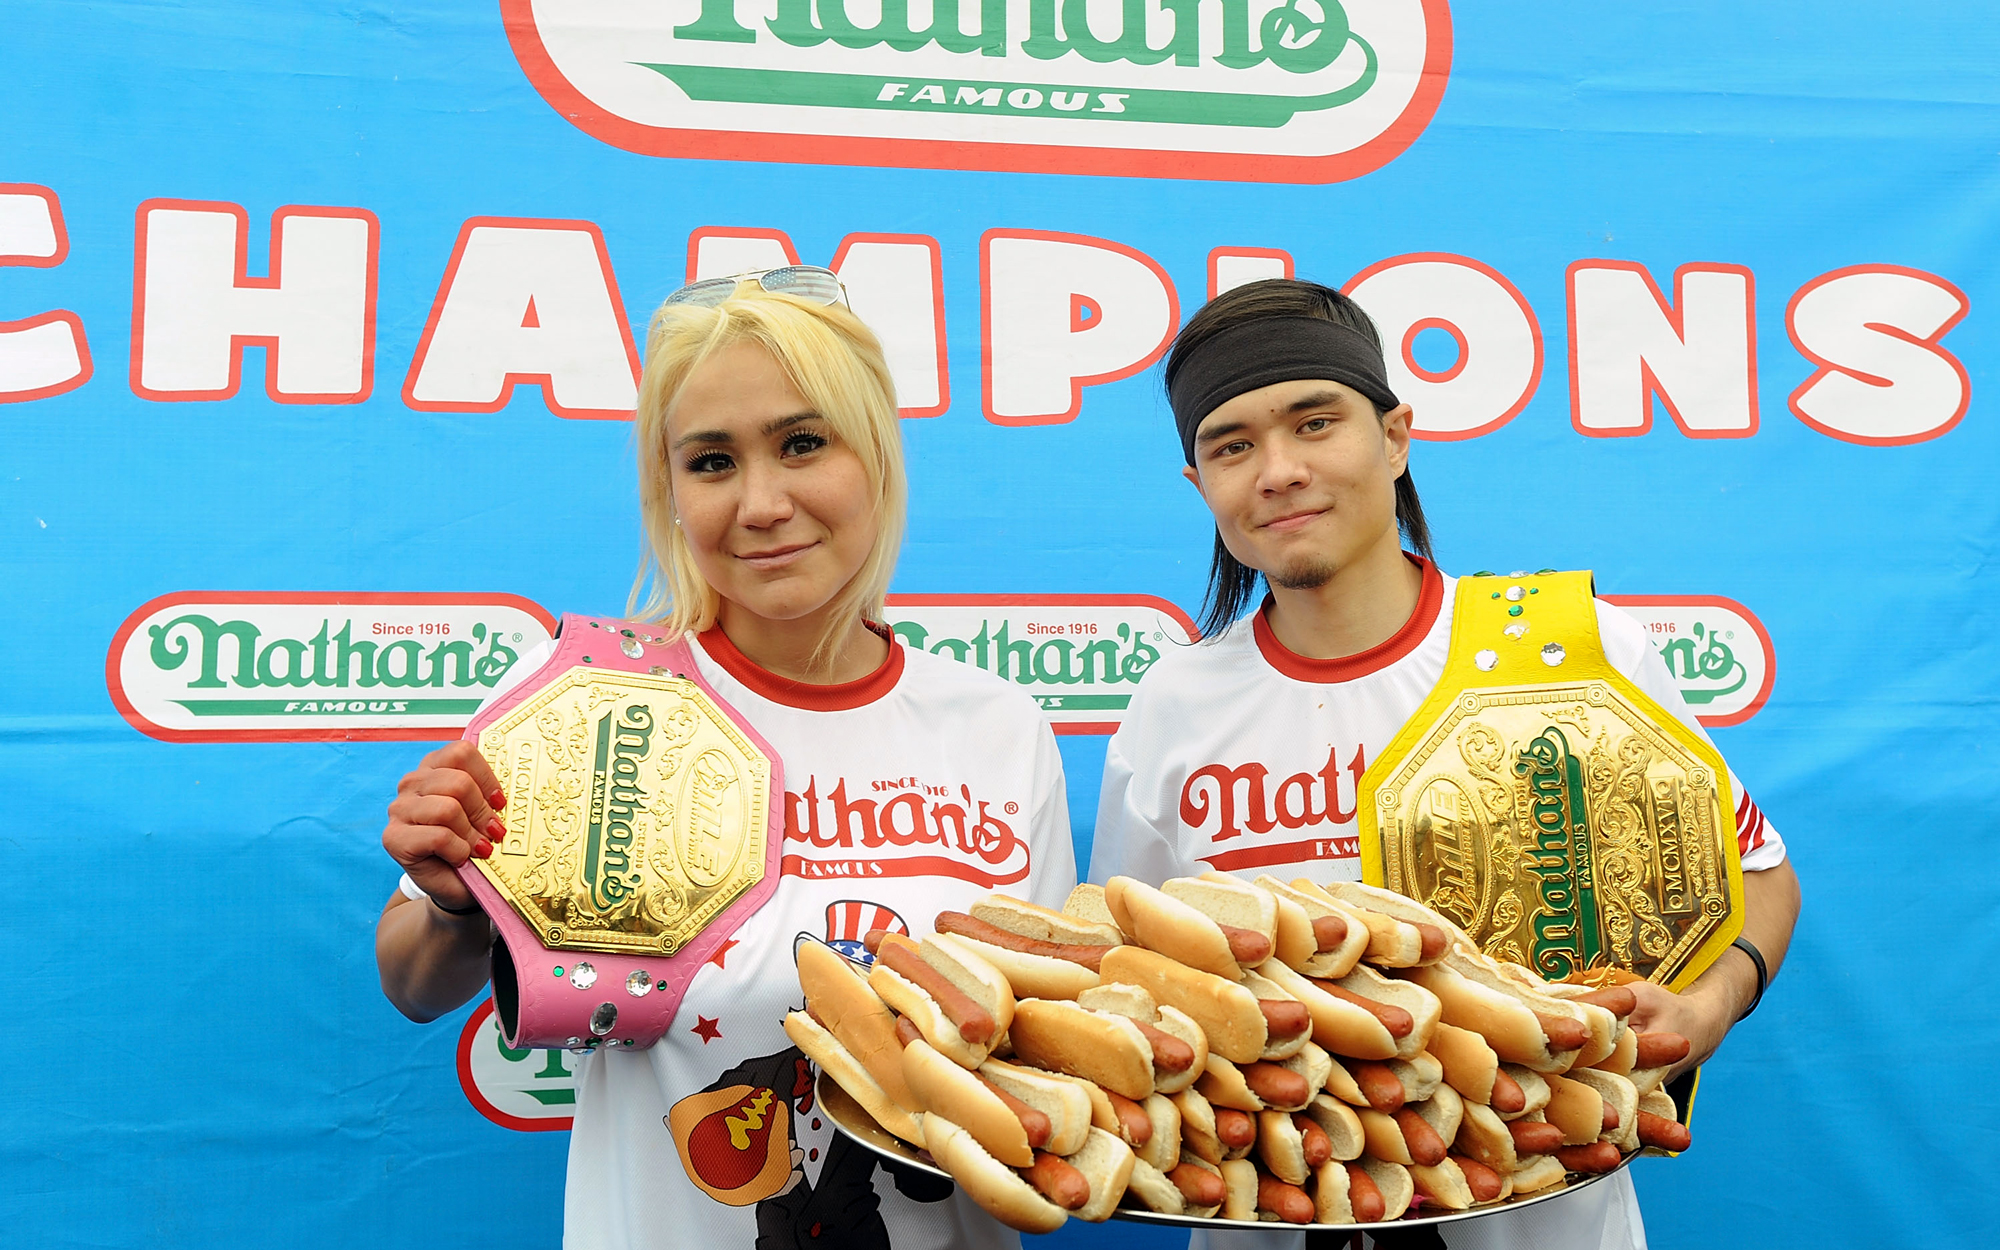 Nathan's Famous Hot Dog Eating Contest